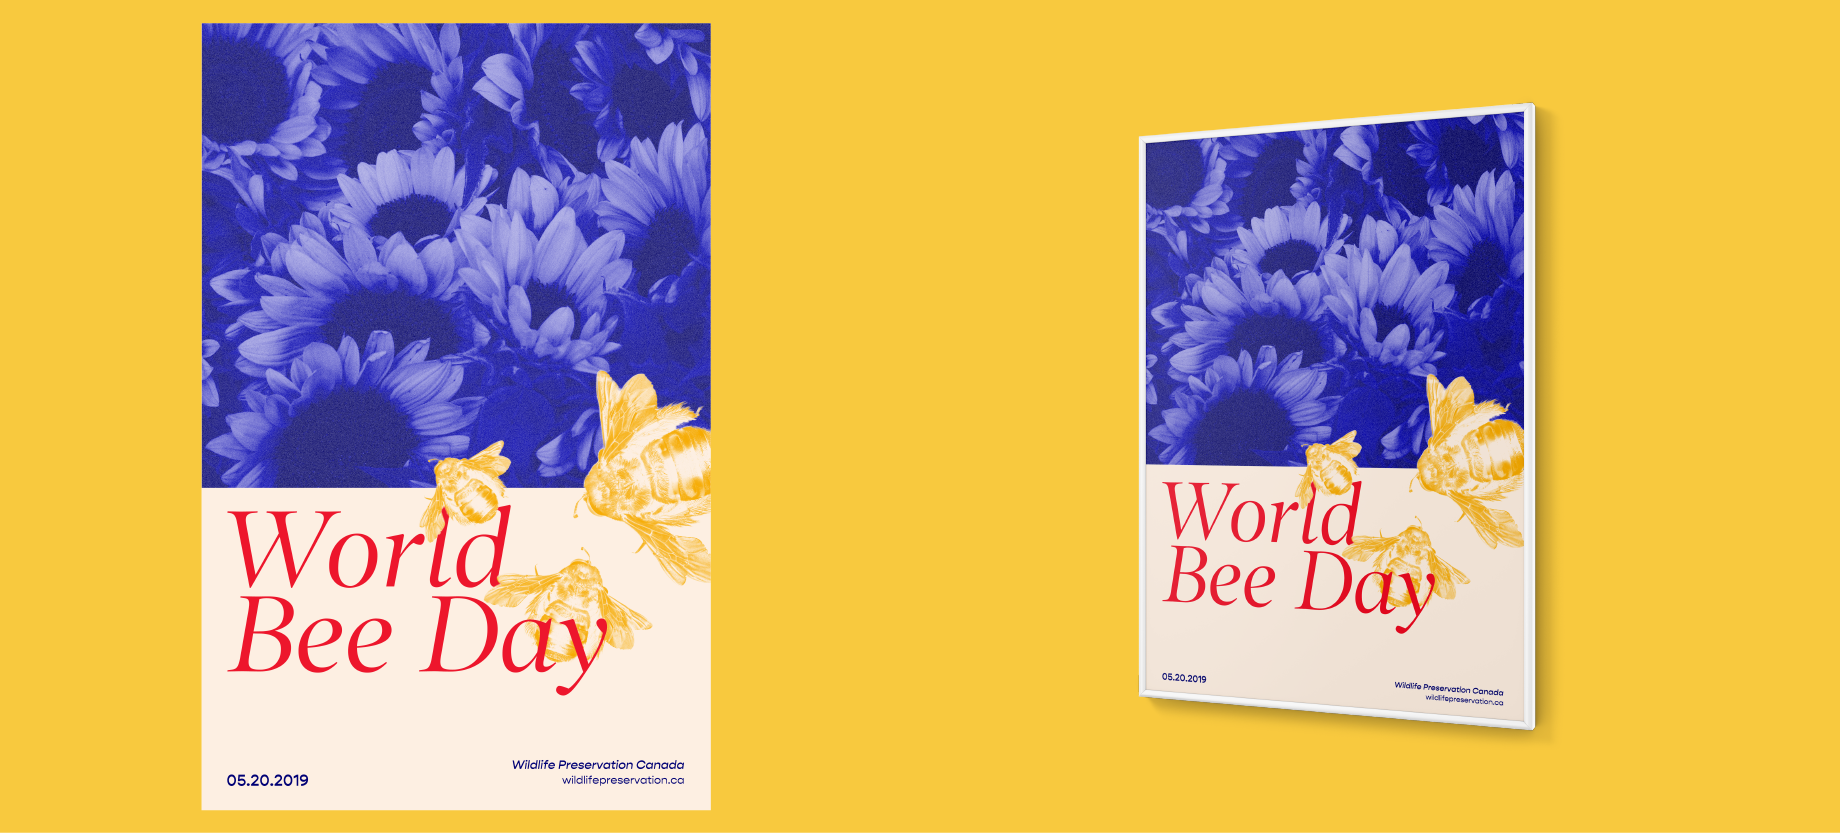 World Bee Day conservation poster light